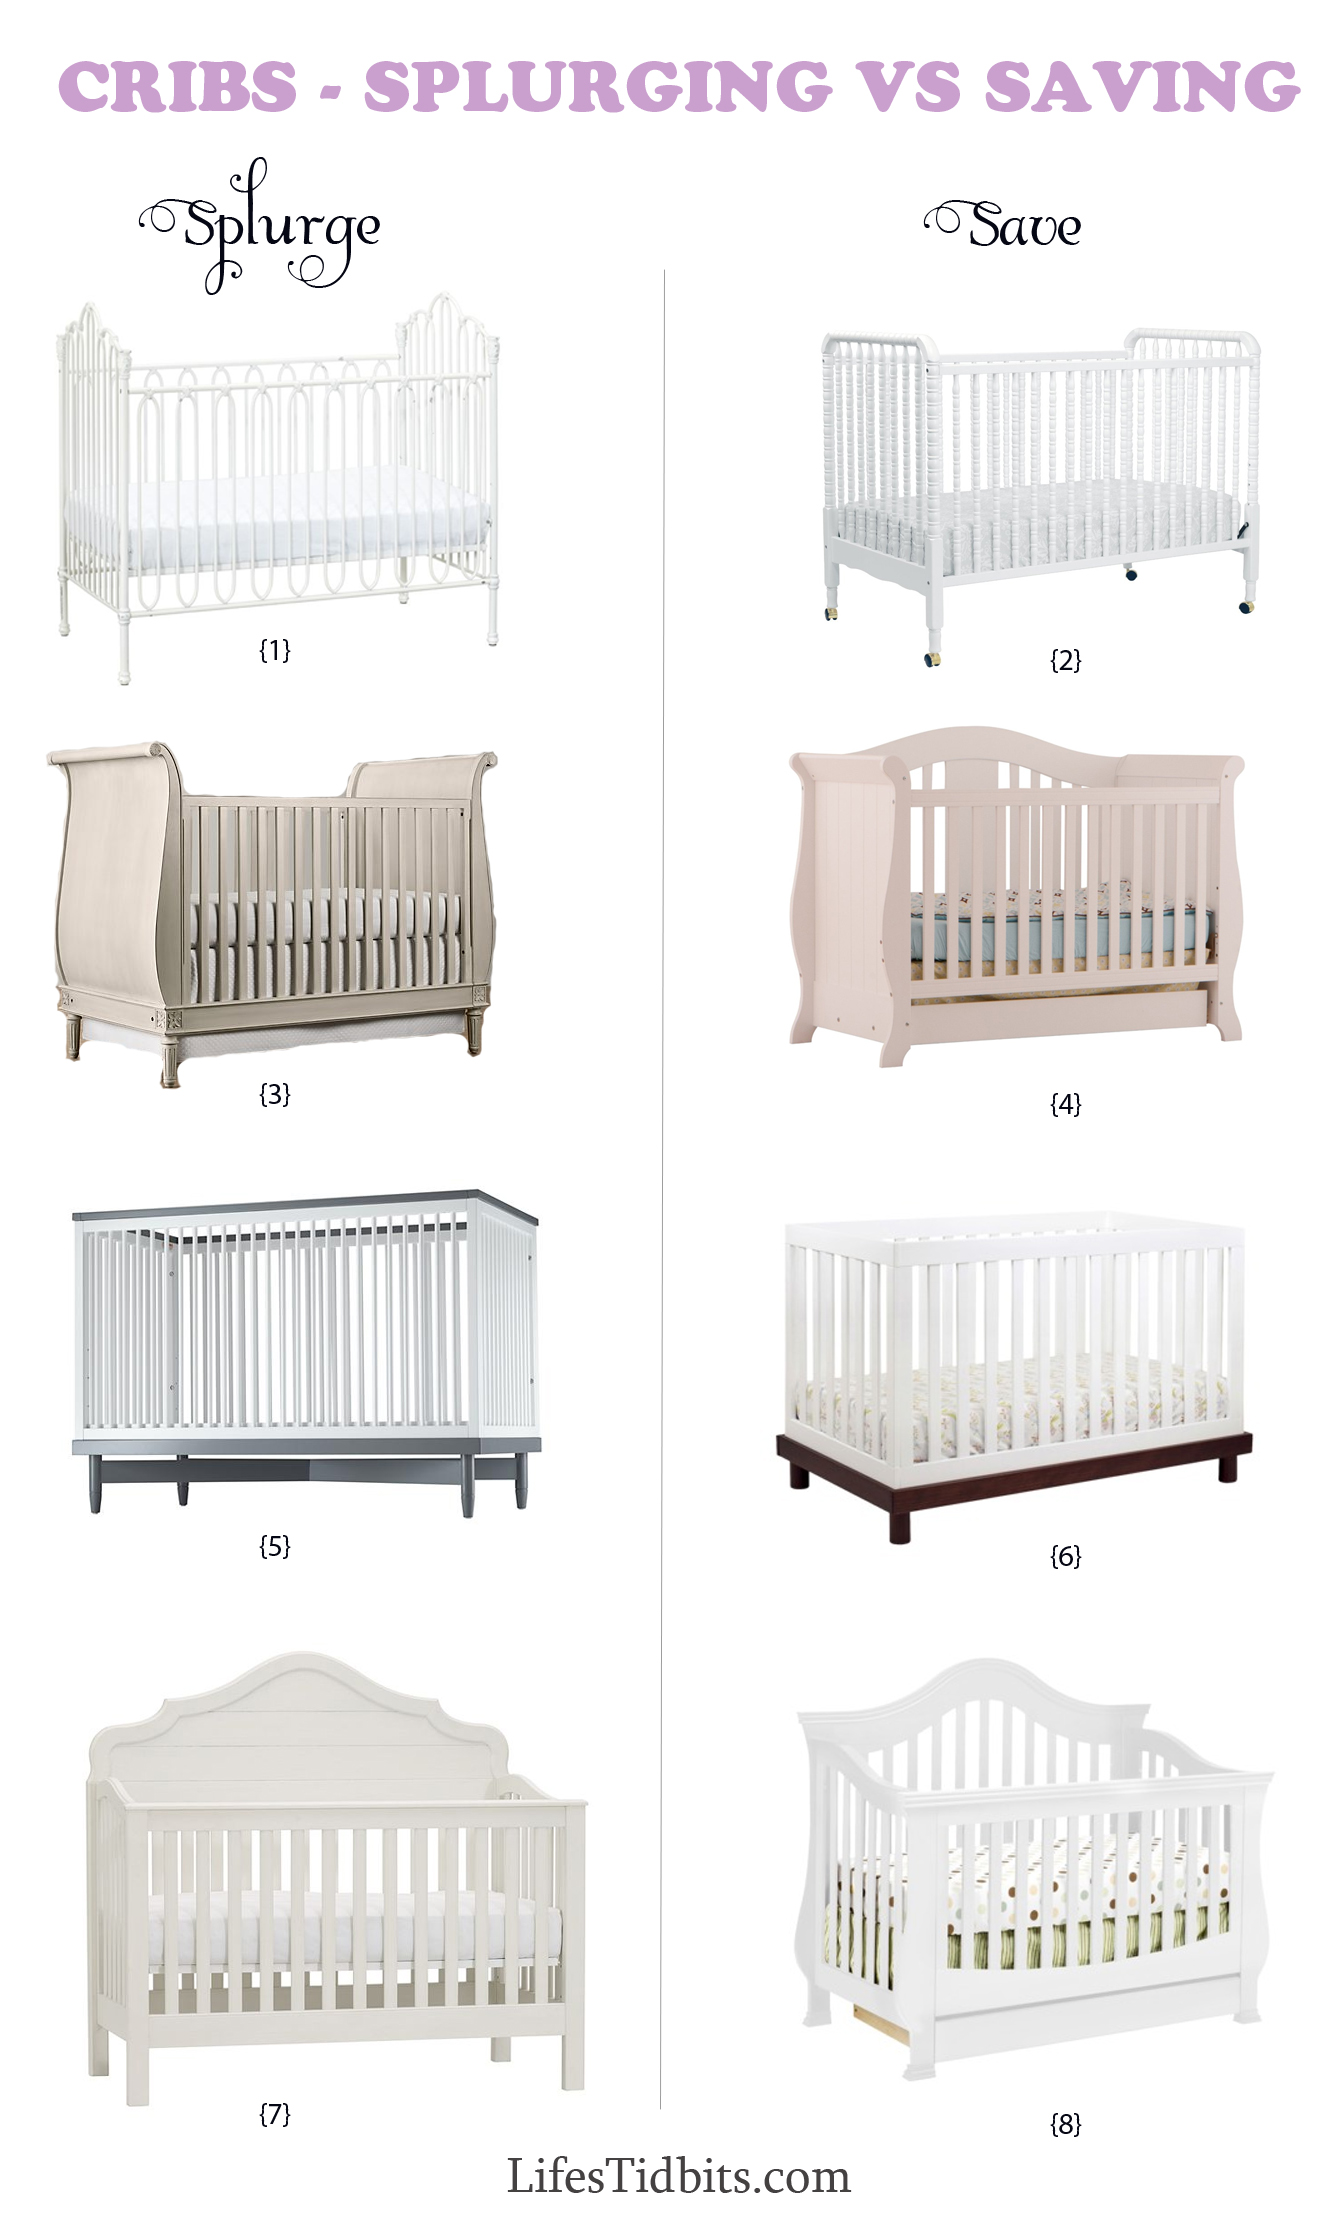 Nursery Crib Inspiration - Splurging vs Saving | Lifes's Tidbits